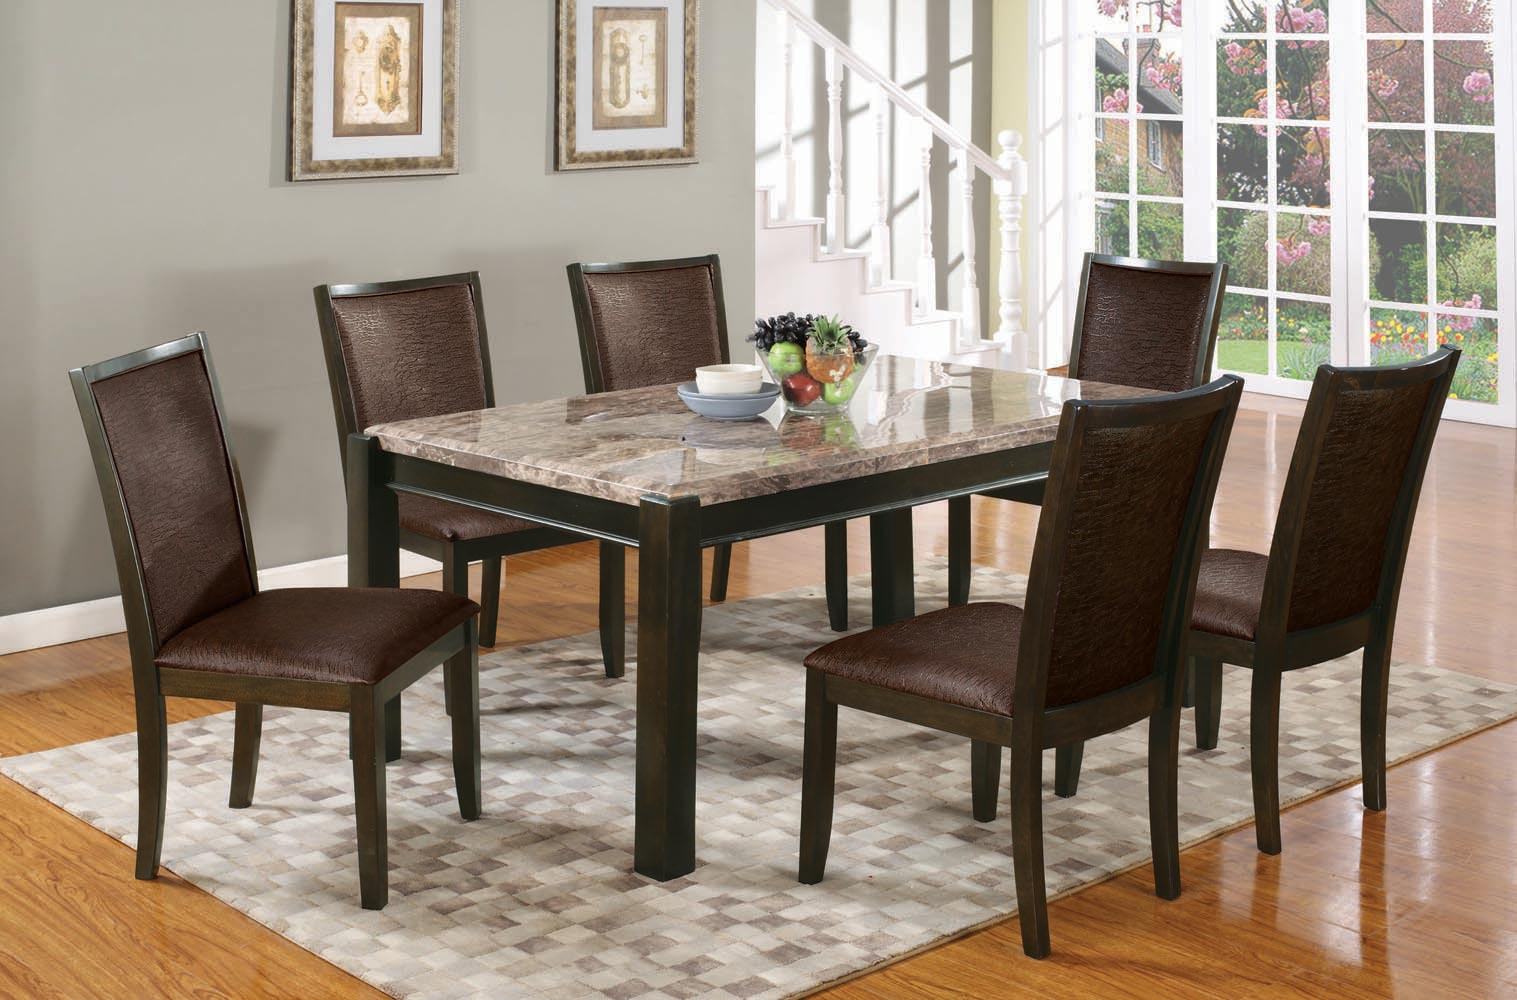 7 Piece Gray Marble Top Dining Set